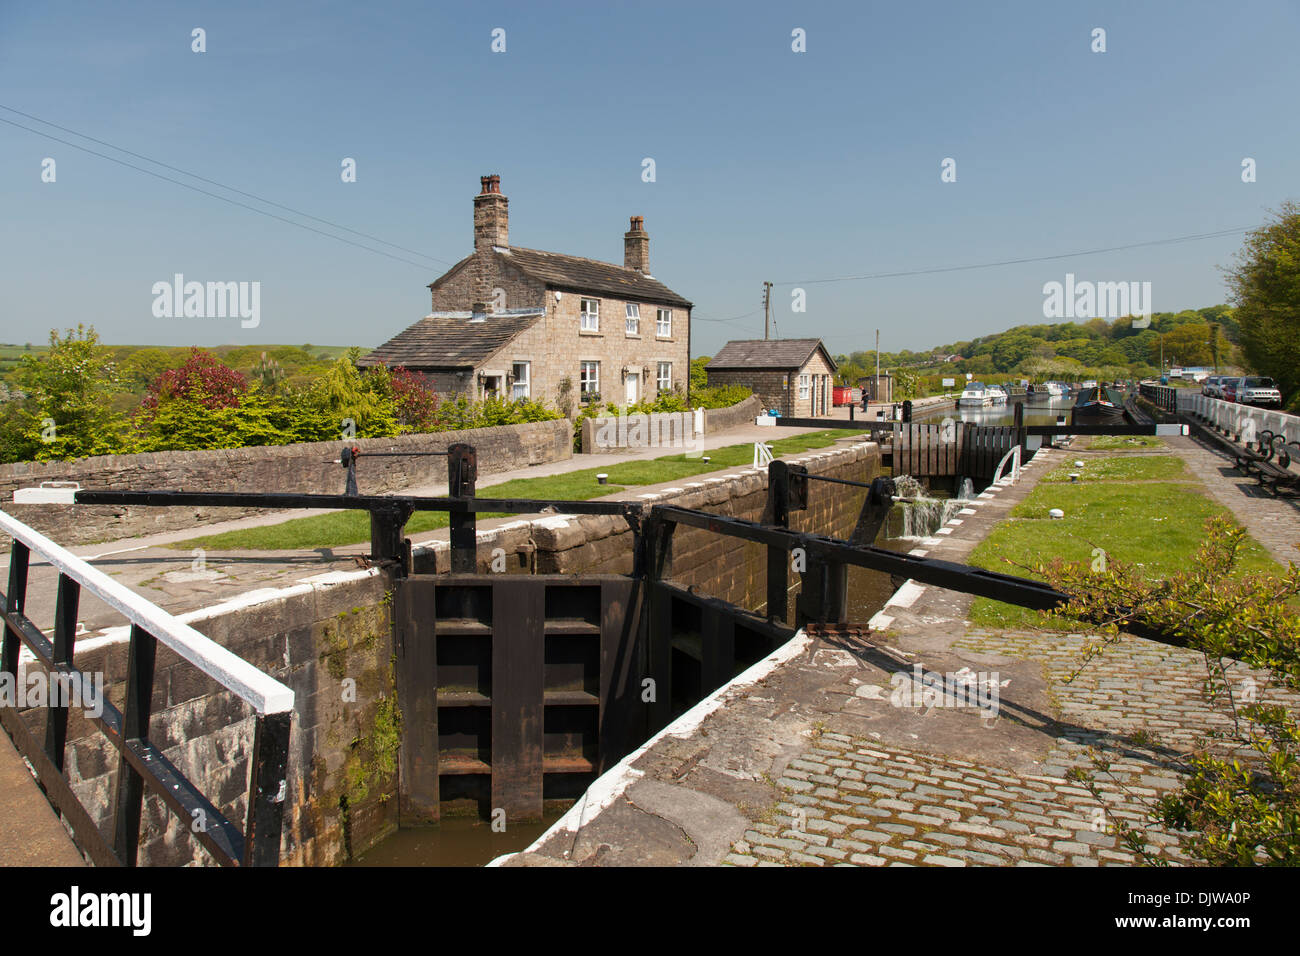 Lock keepers cottage and lock gates and the Leeds Liverpool canal at Wheelton, Lancashire - Stock Image